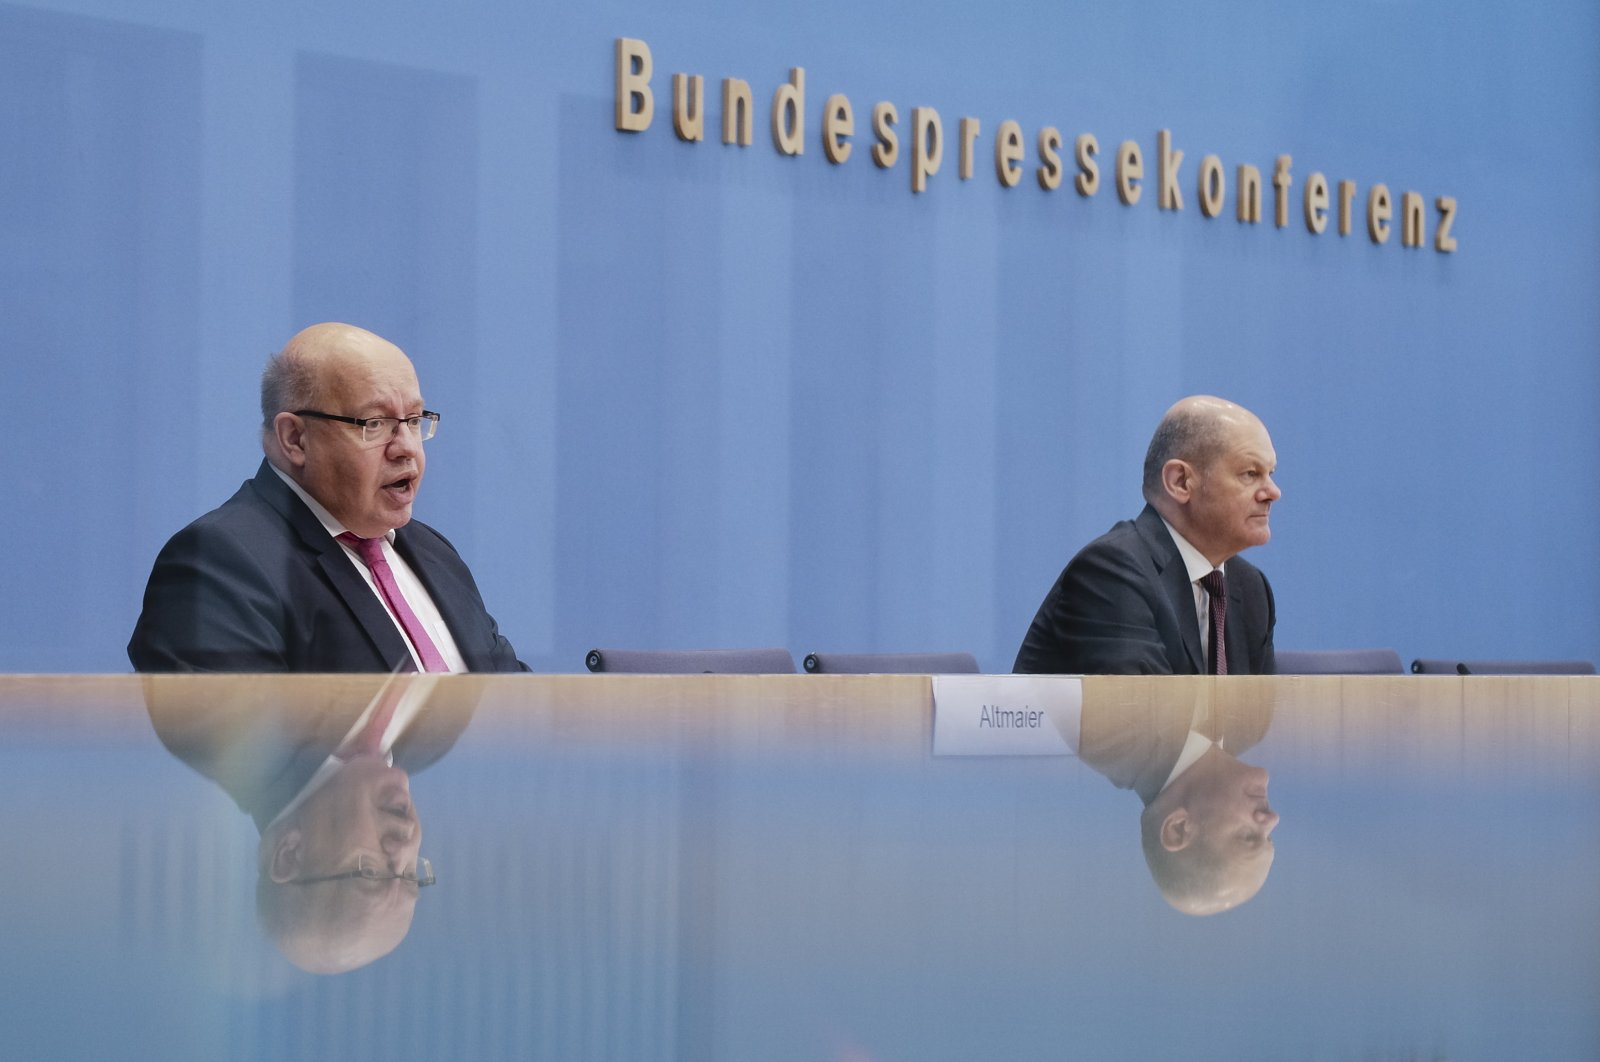 German Finance Minister Olaf Scholz (R) and German Economy Minister Peter Altmaier brief the media during a news conference about financial support for the German economy during the coronavirus crises in Berlin, Germany, Thursday, Oct. 29, 2020. (AP Photo)